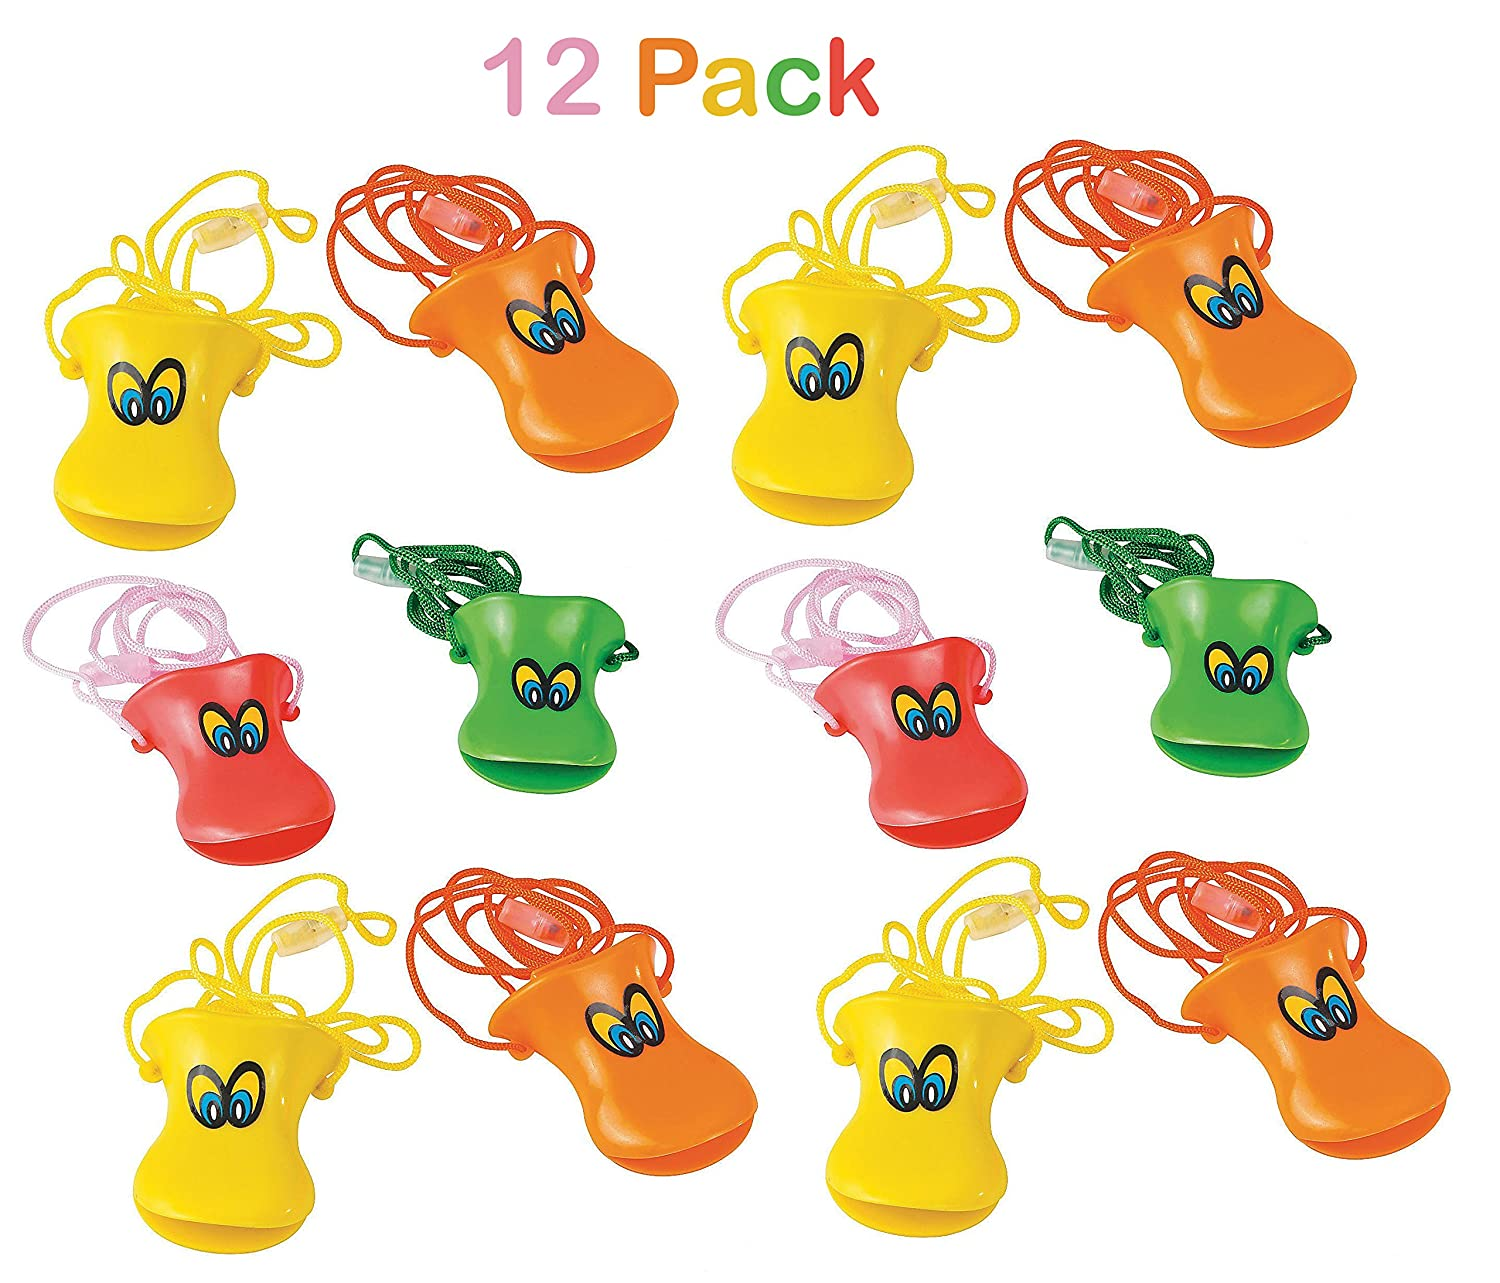 """Prize Gift Toy Fun Whistle Noise Makers Necklaces For Kids Great Party Favors Whistle Is 3/"""" Pack Of 12 Plastic Duck Beak Whistles With Nylon Cord Assorted Colors Cord Is 26/"""" By Kidsco Kayco USA"""